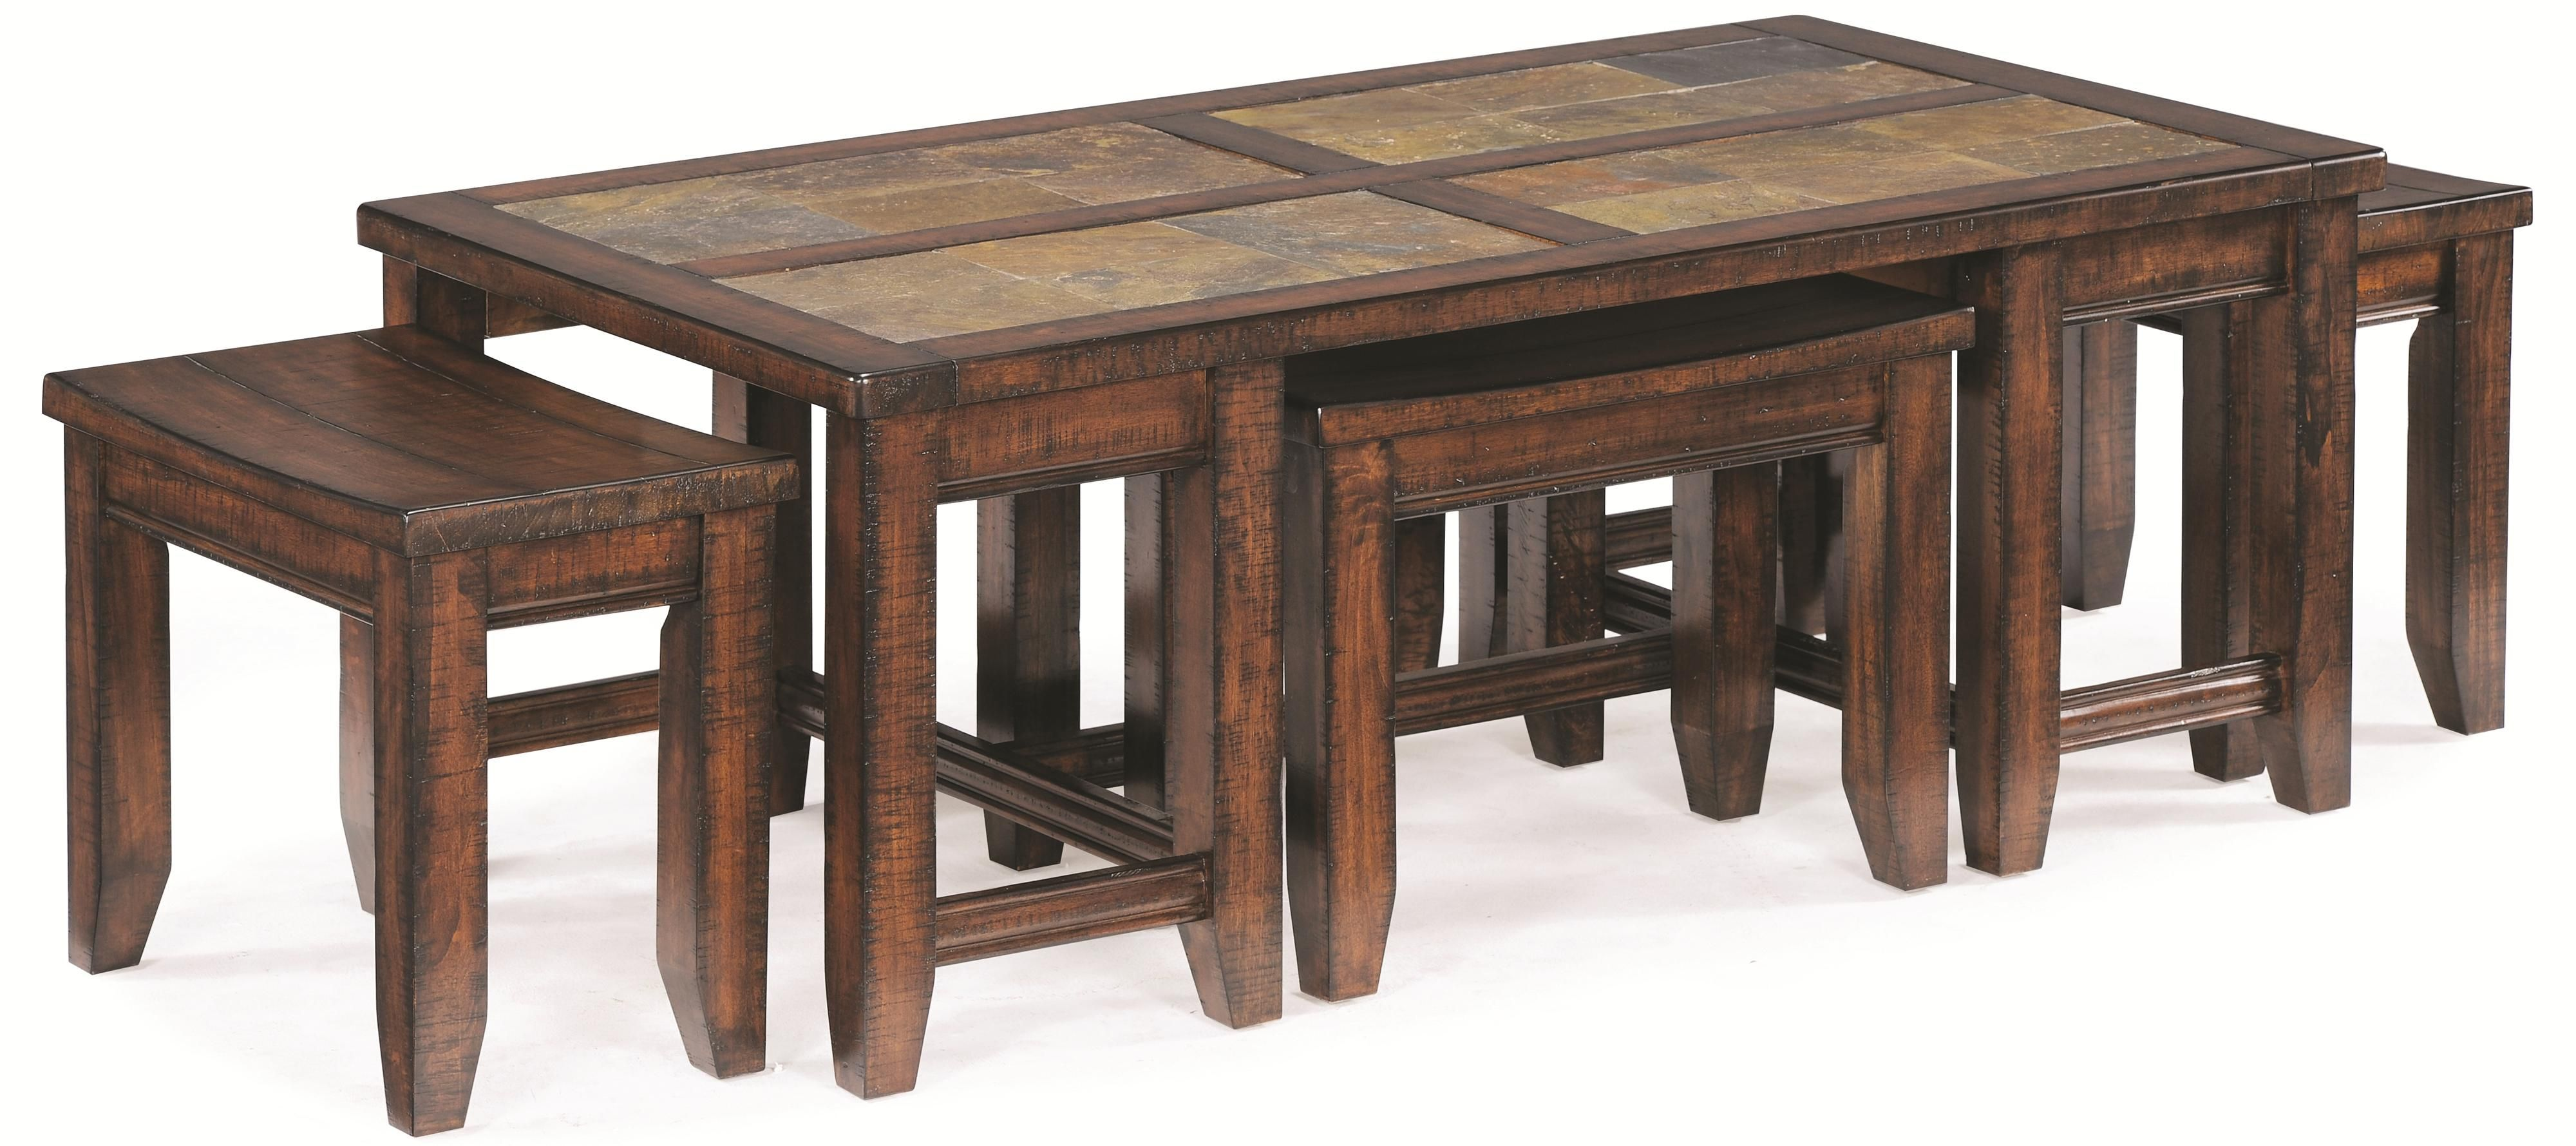 Allister Rectangular Cocktail Table By Magnussen Home Coffee Table With Stools Coffee Table With Stools Underneath Coffee Table [ 1779 x 4000 Pixel ]